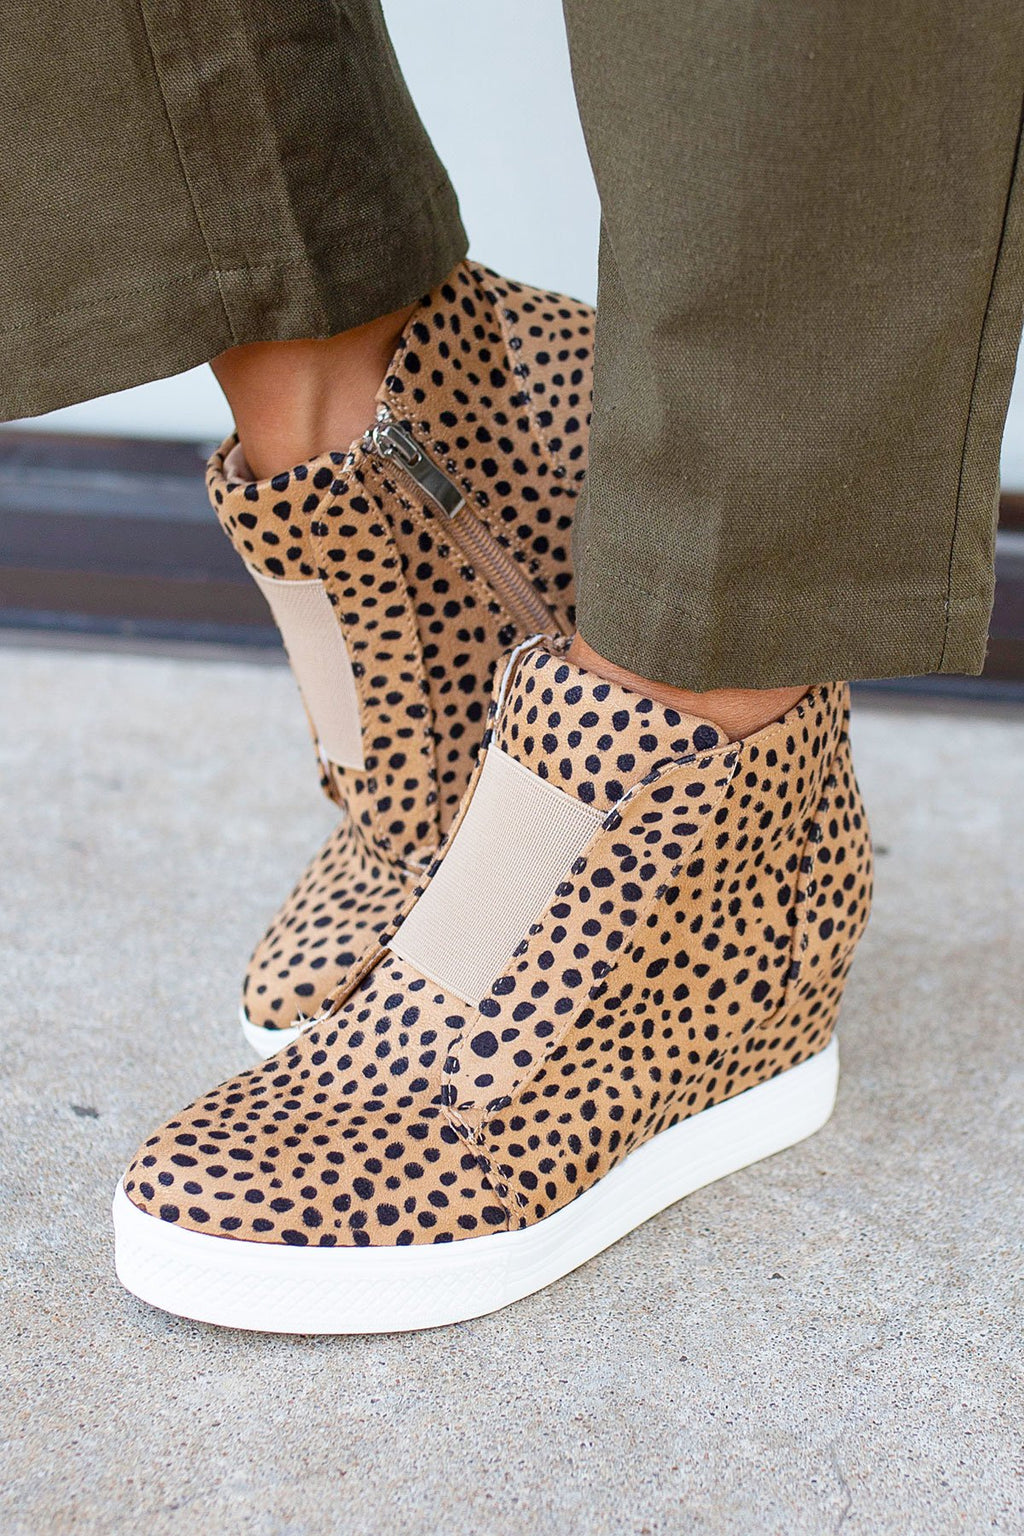 Cheetah Print Wedge Sneaker - Amaranth Collection